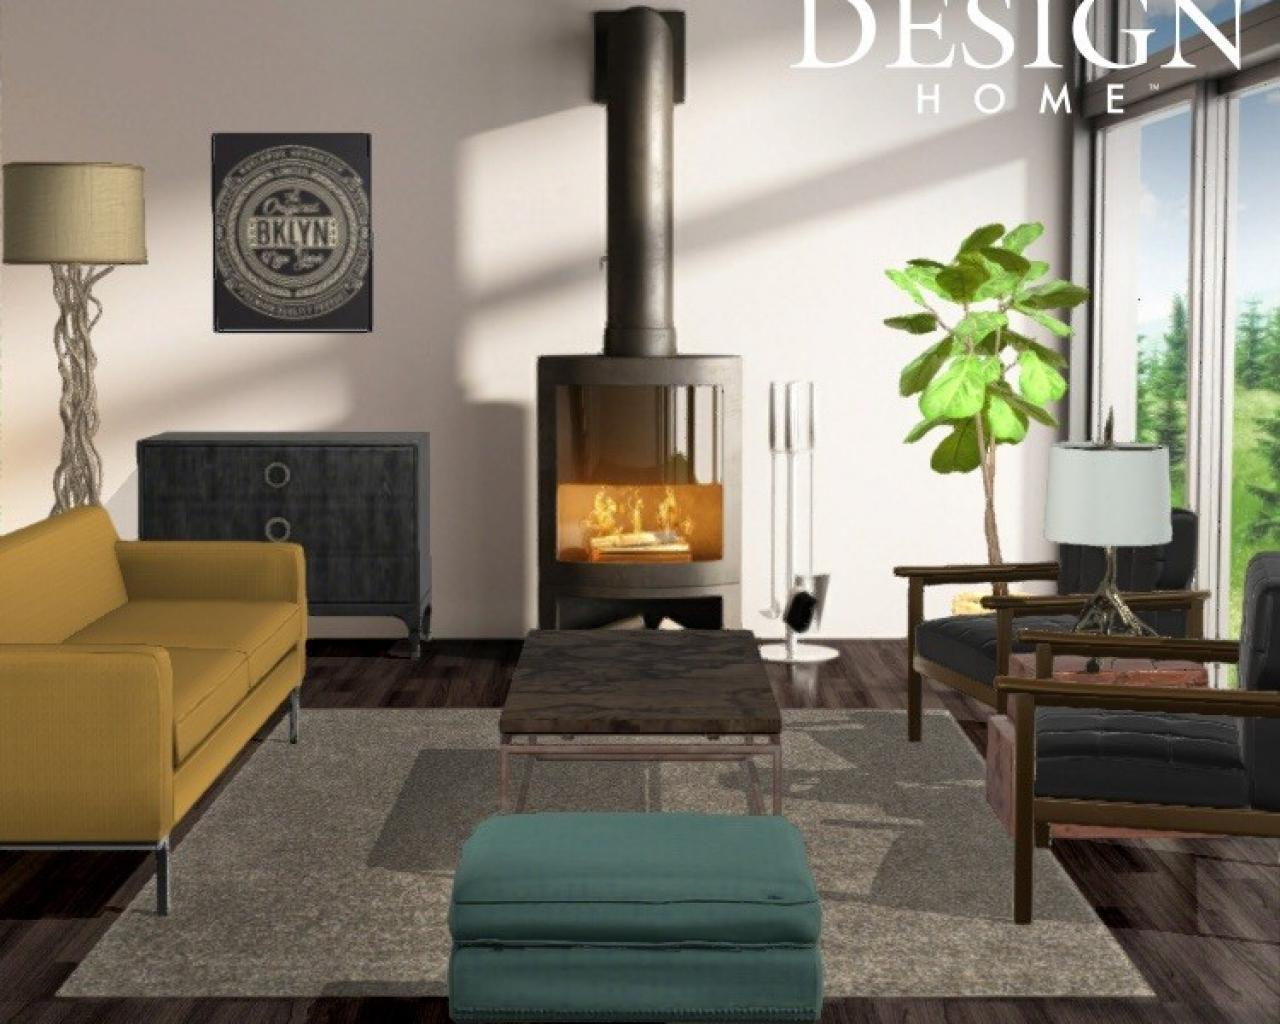 Charmant Keriu0027s Design: Cozy, Modern Living Room